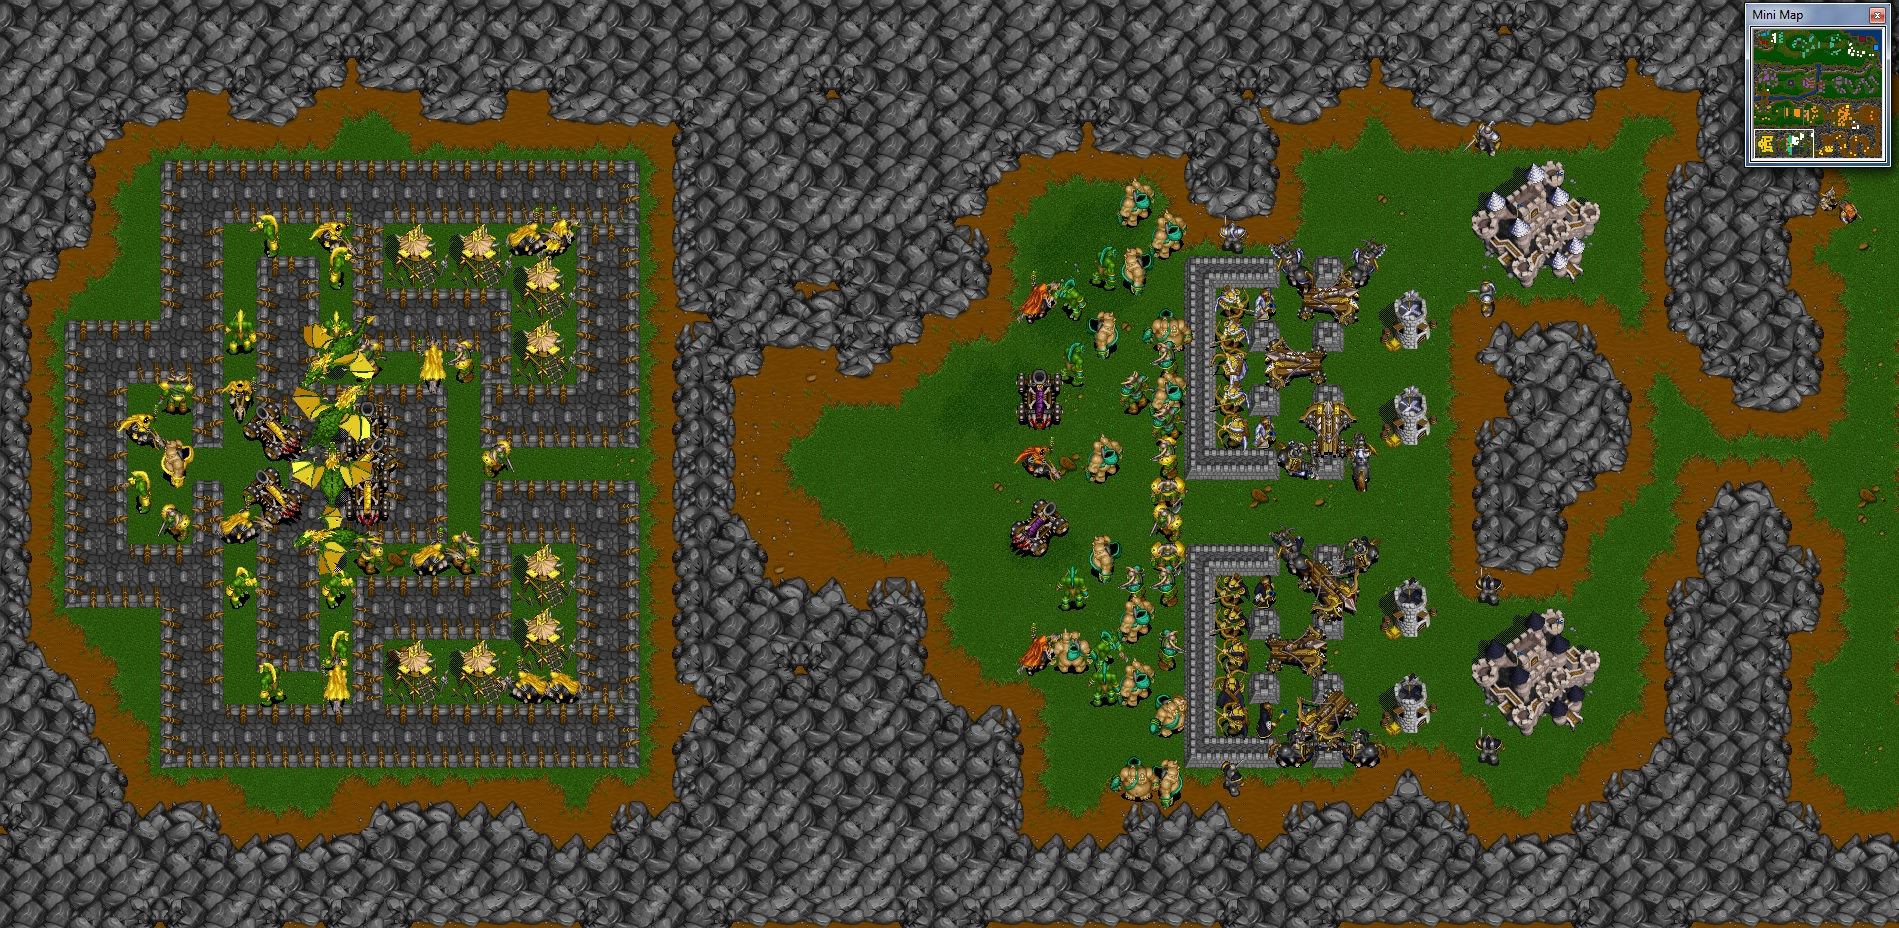 Warcraft 2 maps timothy johnson limitations in the map editor helped to drive innovation and creativity for example it was impossible to program a hero selection screen as is seen in gumiabroncs Image collections